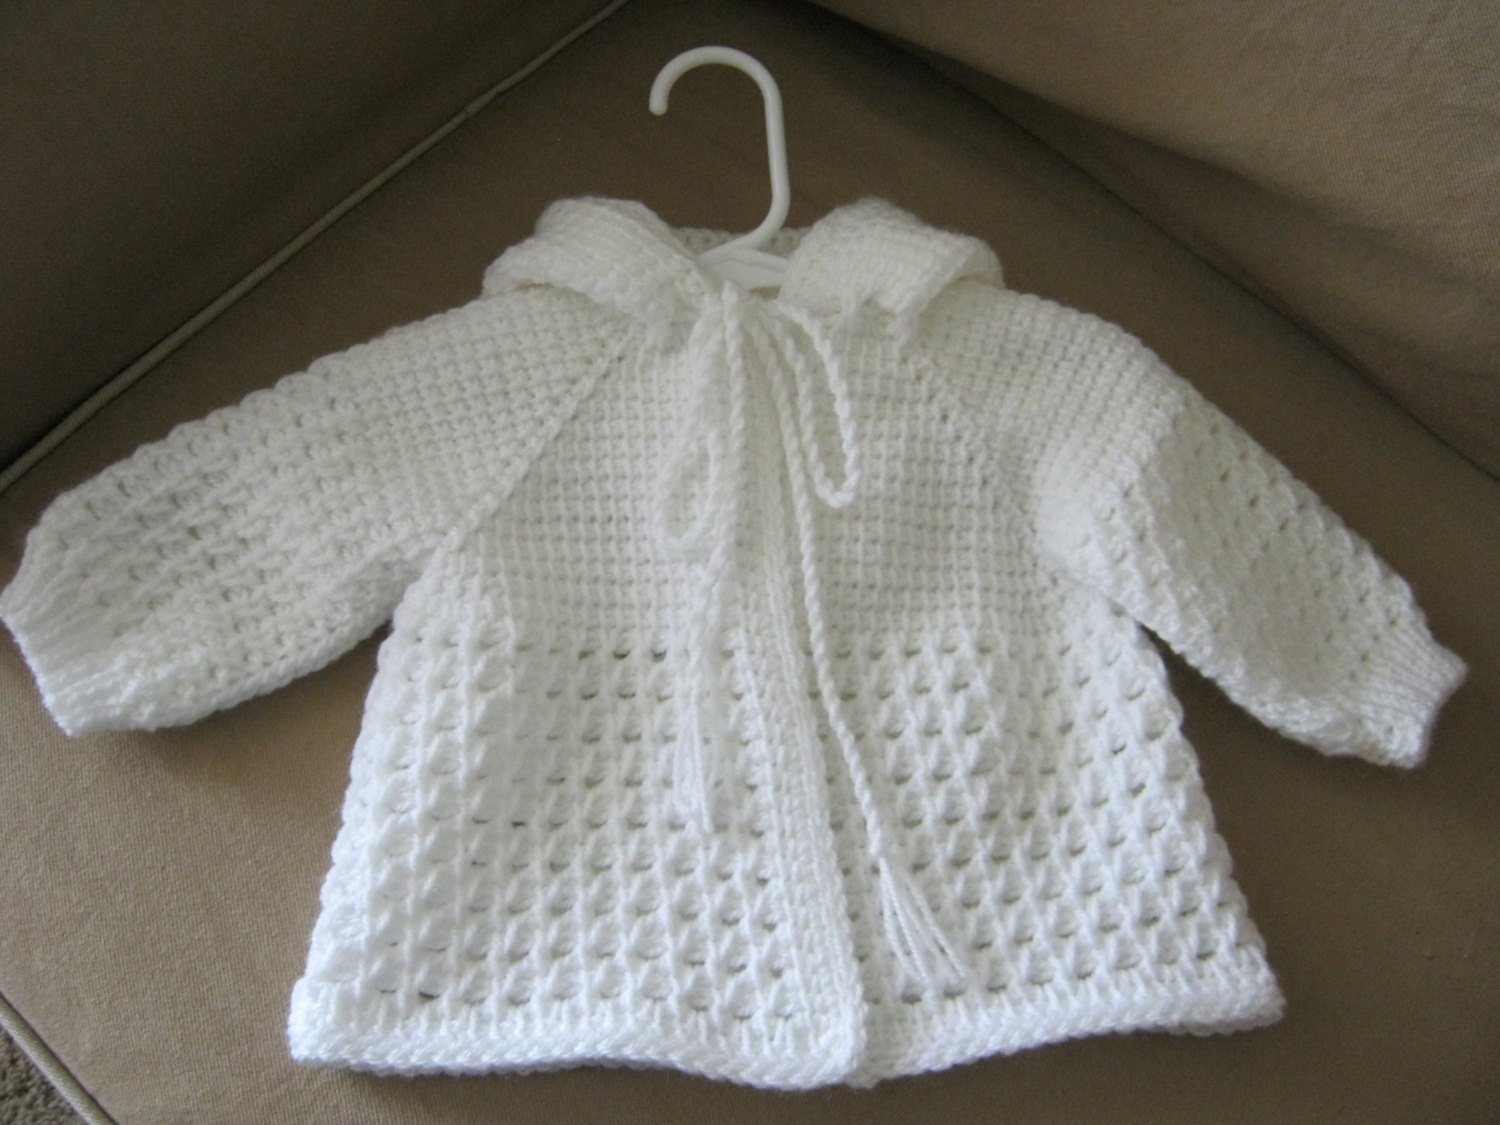 Crochet toddler Sweaters Fresh Handmade Baby Sweaters Design Of Attractive 46 Pictures Crochet toddler Sweaters